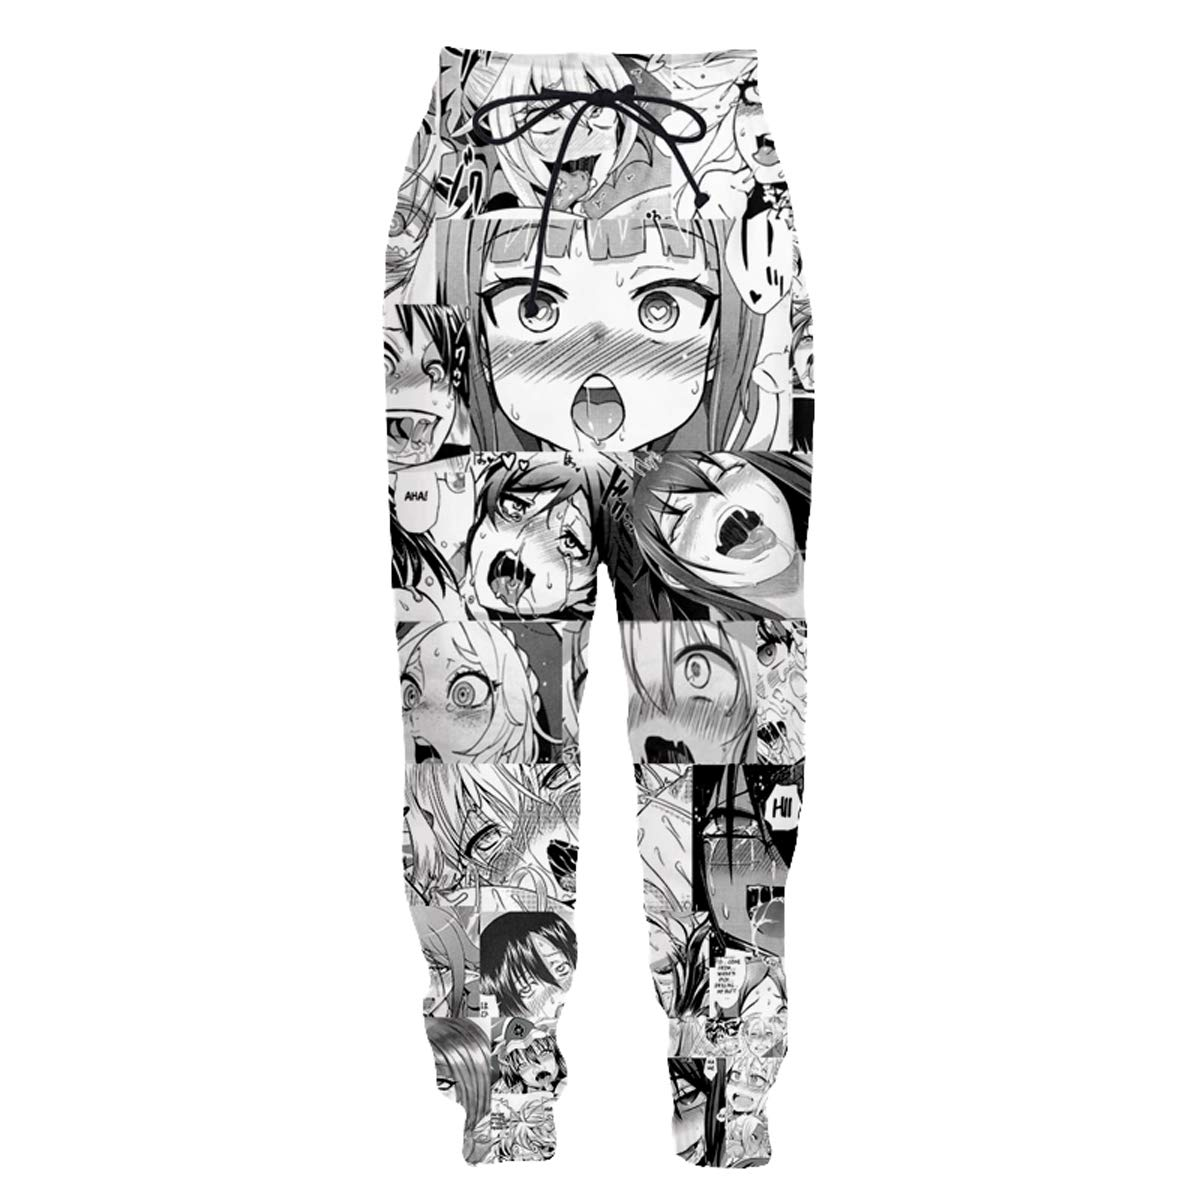 YX GIRL Unisex 3D Printed Casual Ahegao 3D Fashion Men and Women' s Fashion Funny Pullover Hoodie Sweatshirts